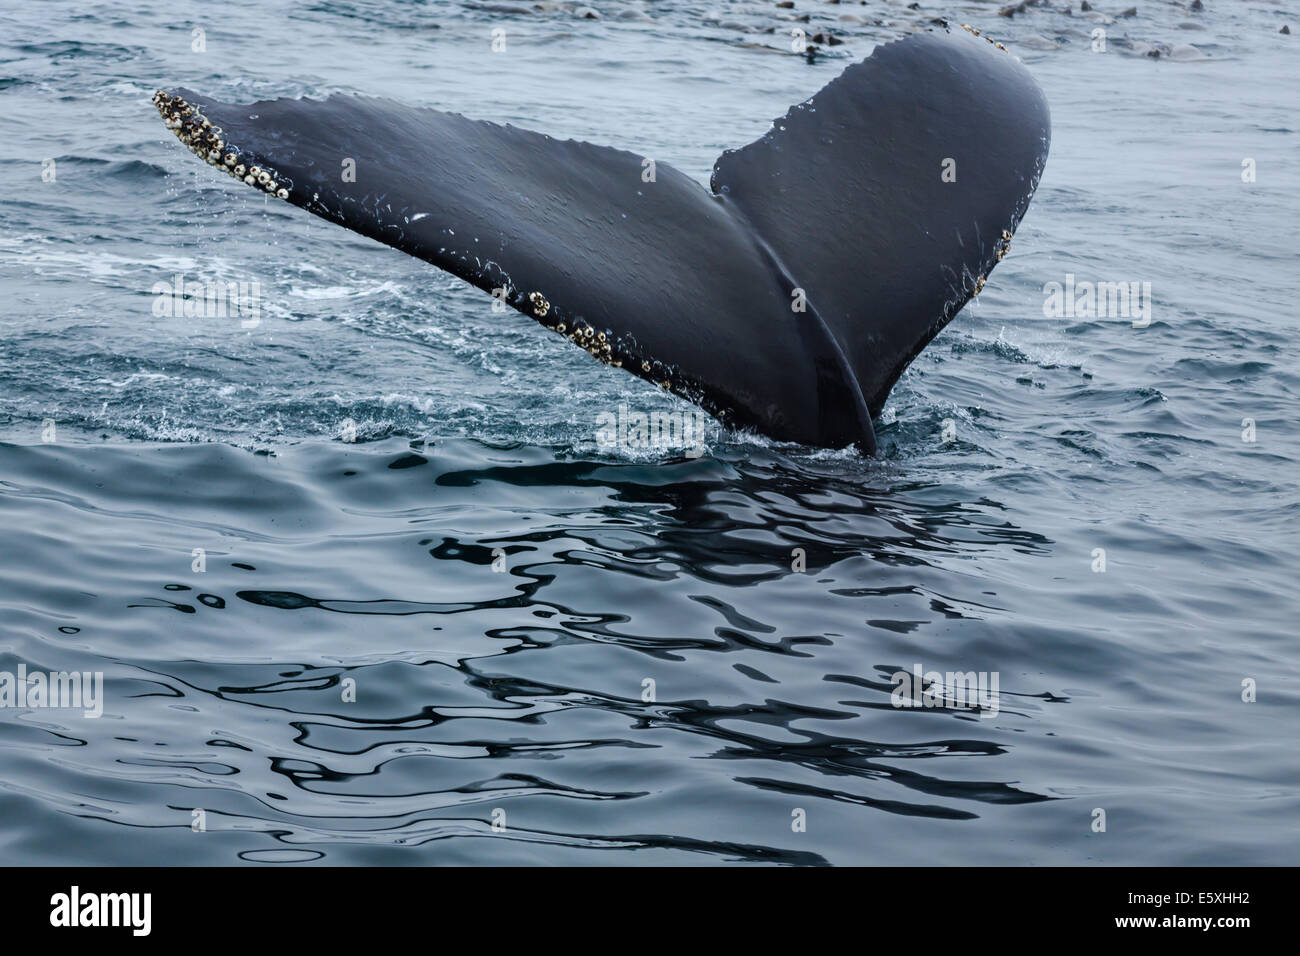 Close up of Humpback whale tail lobtailing off California coast during migration - Stock Image